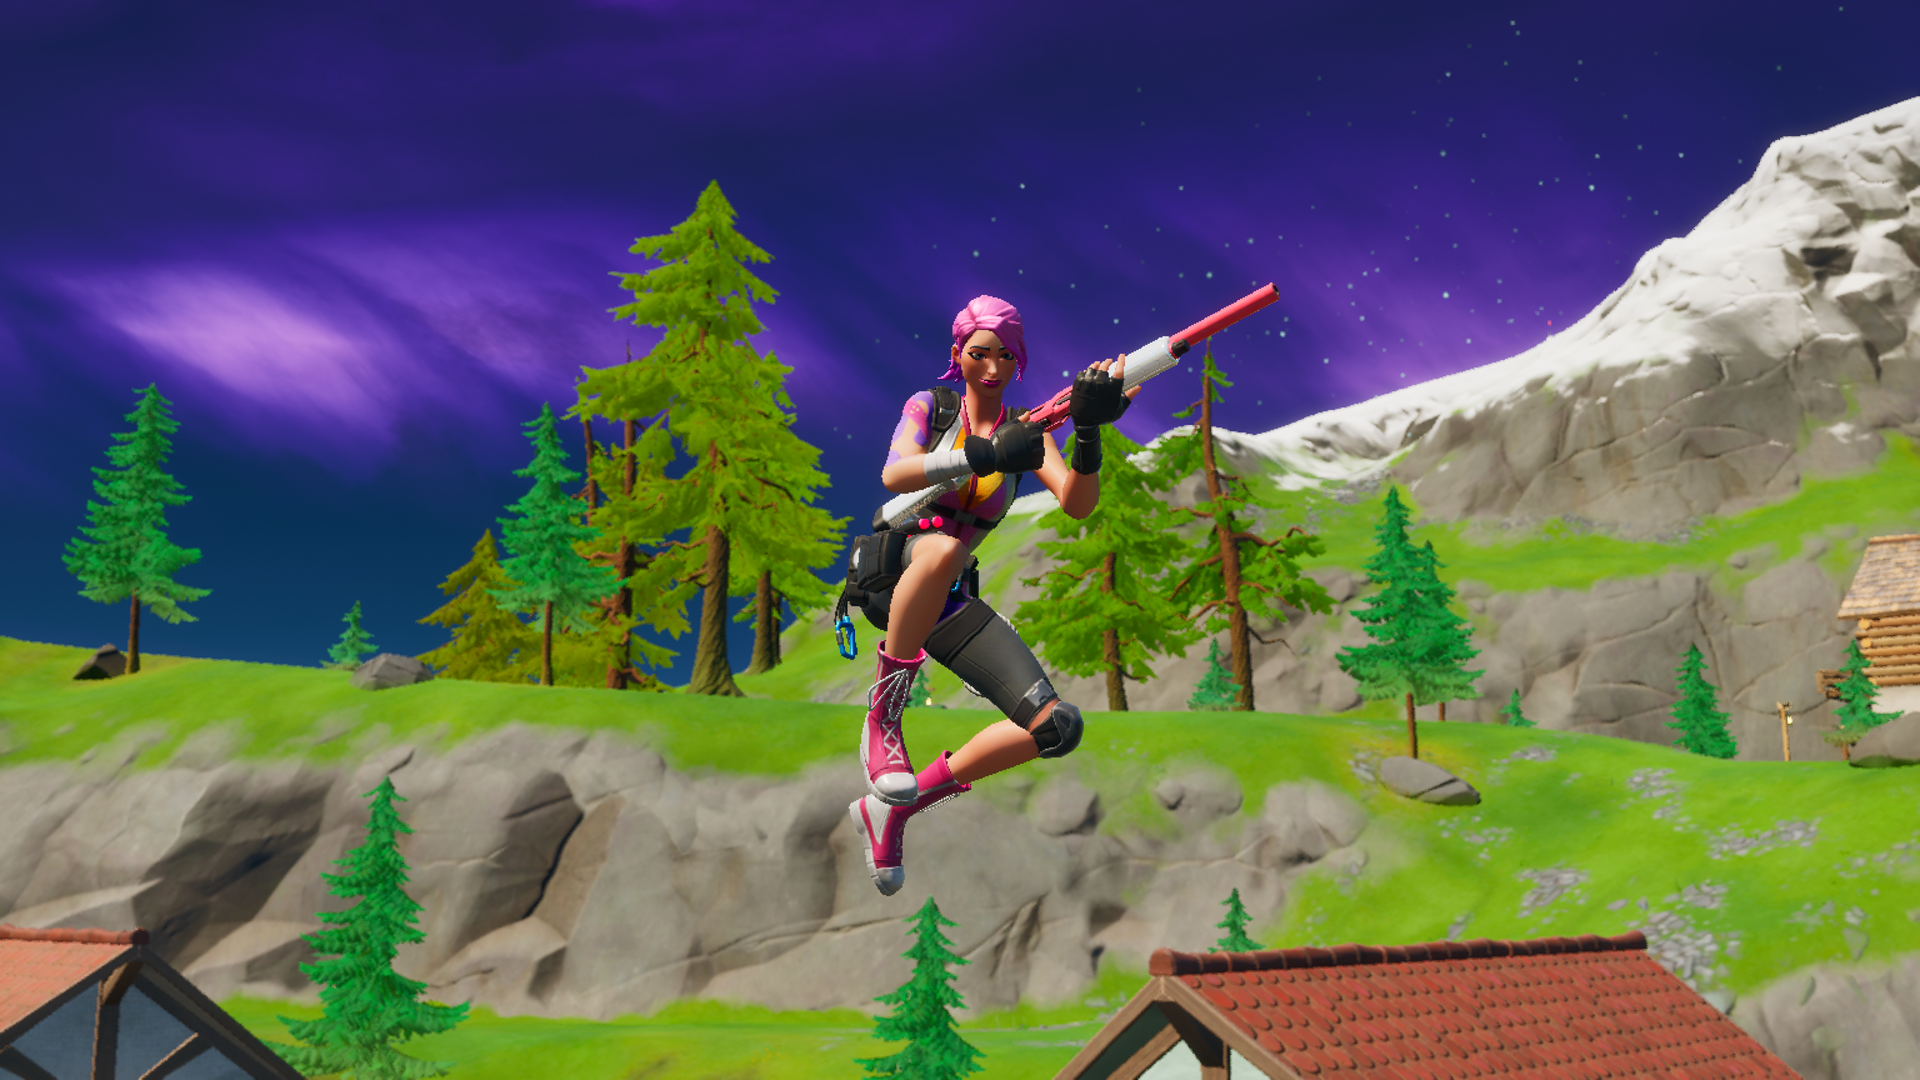 A Fortnite player jumping with a shotgun from Chapter 2